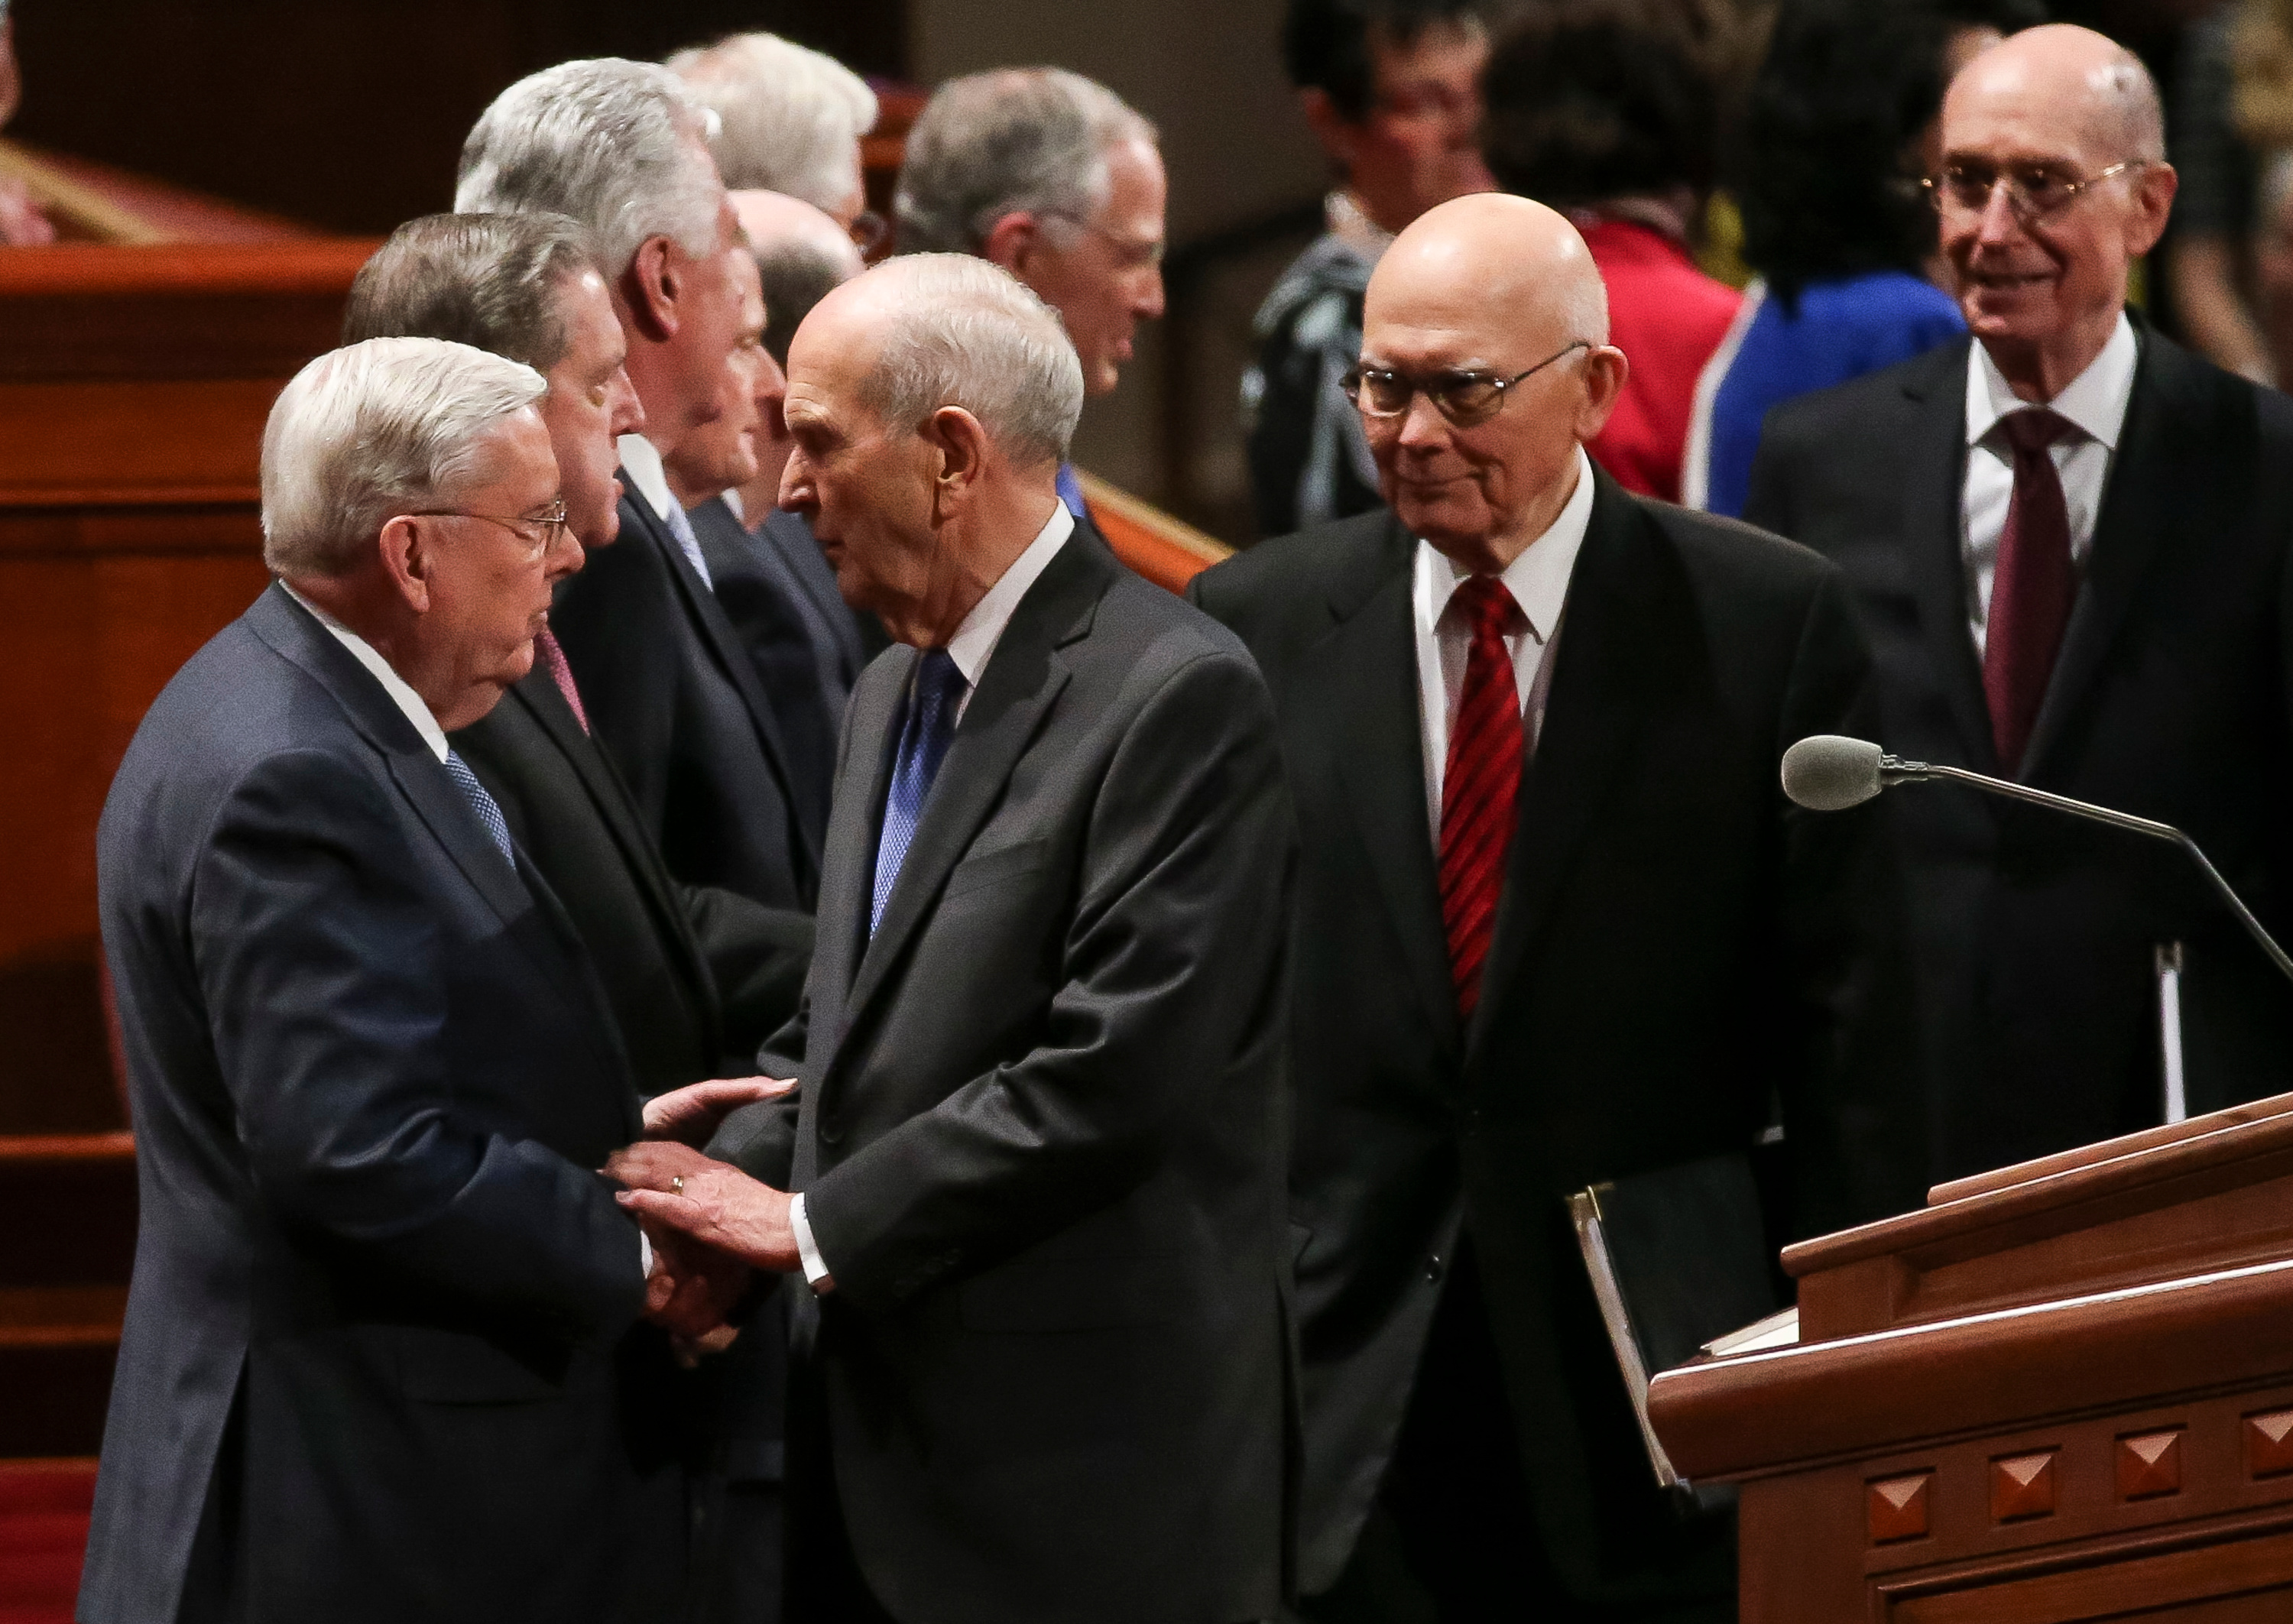 President M. Russell Ballard, Acting President of the Quorum of the Twelve Apostles, greets President Russell M. Nelson as he arrives with his counselors, President Dallin H. Oaks, first counselor in the First Presidency, and President Henry B. Eyring, second counselor in the First Presidency, at the start of the Saturday afternoon session of the 188th Annual General Conference of the LDS Church at the Conference Center in Salt Lake City on March 31, 2018.